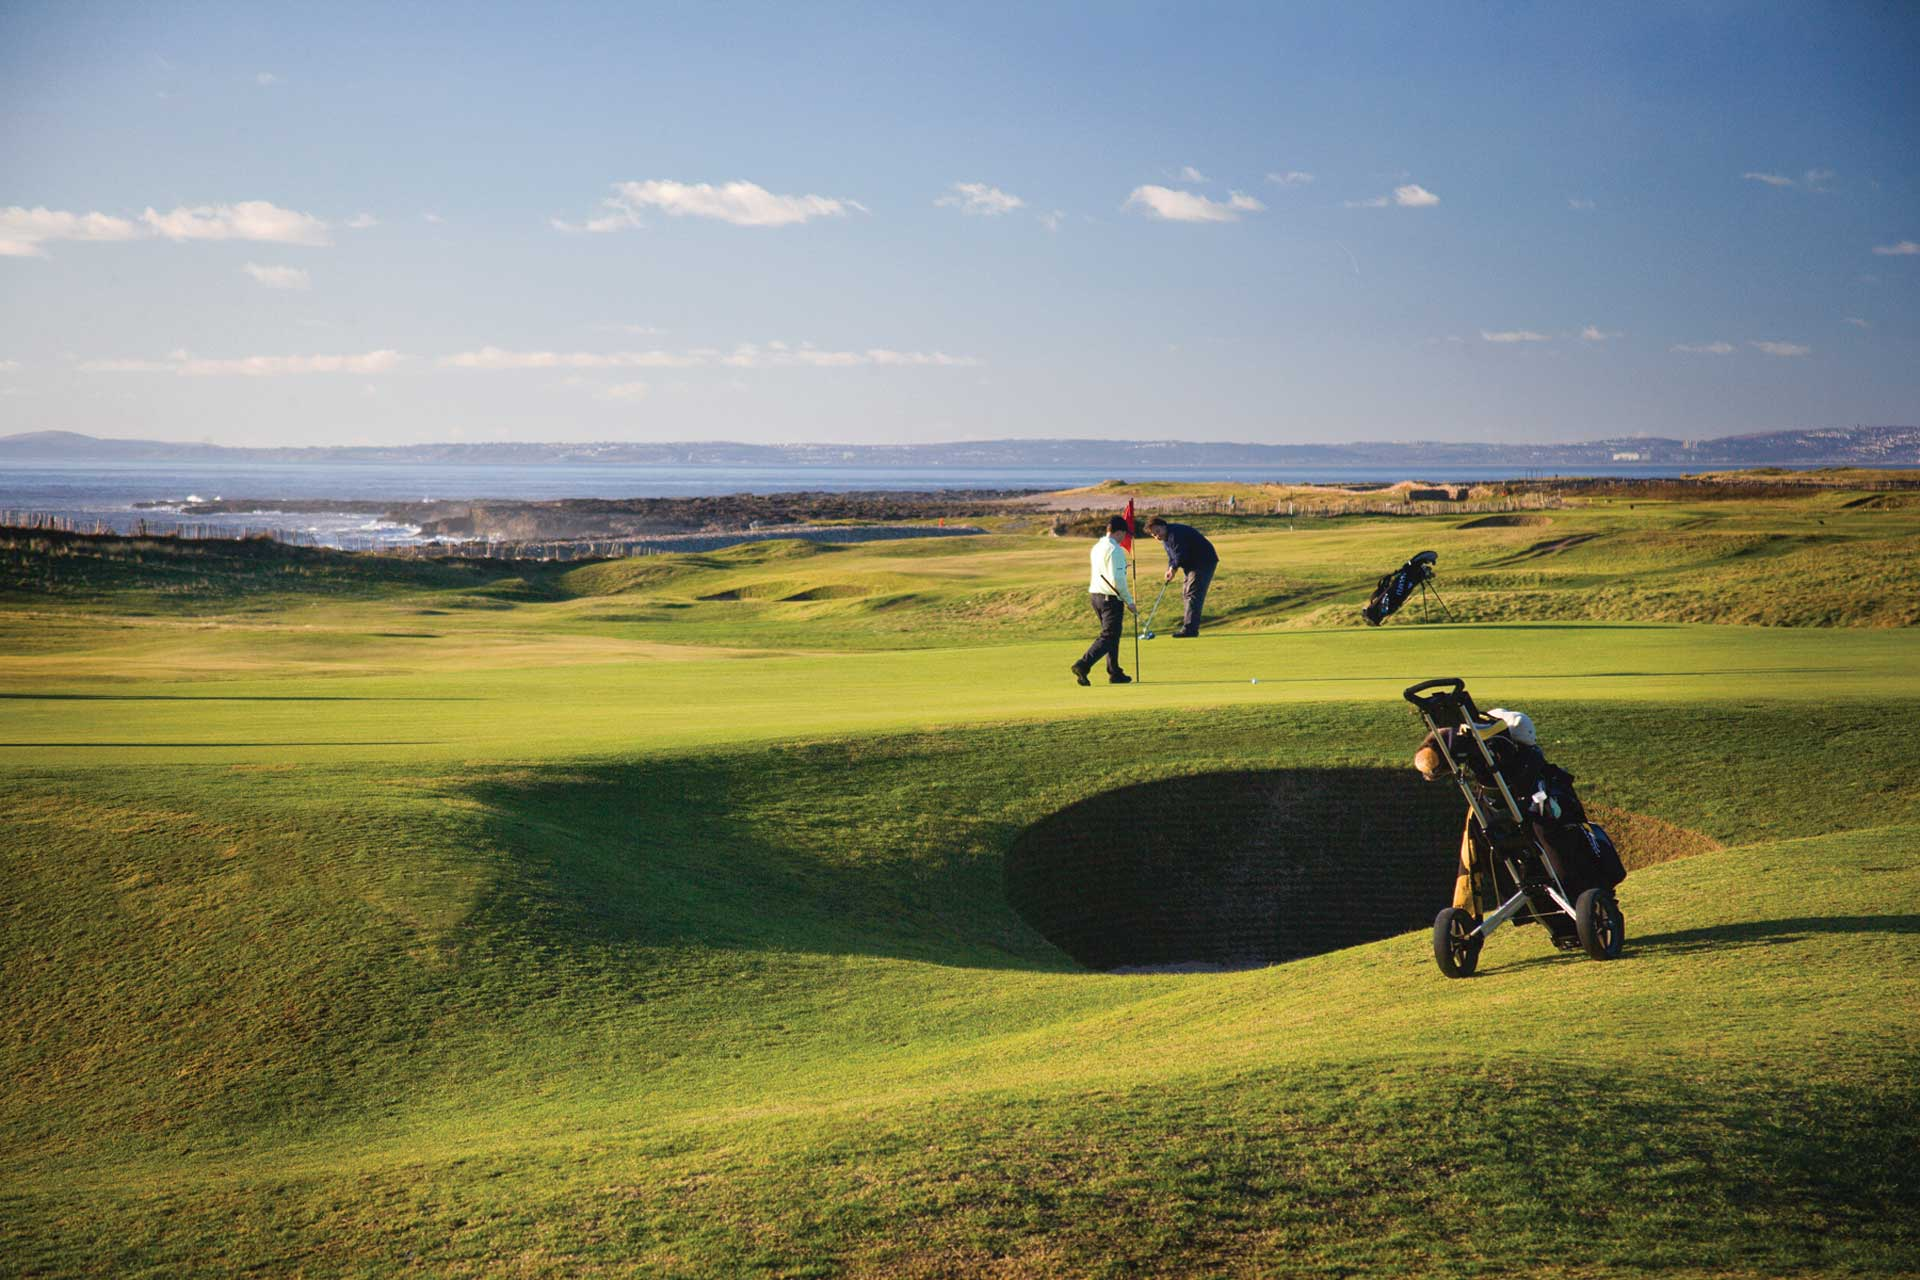 The rolling terrain and golf green at the Royal Porthcawl Golf Club